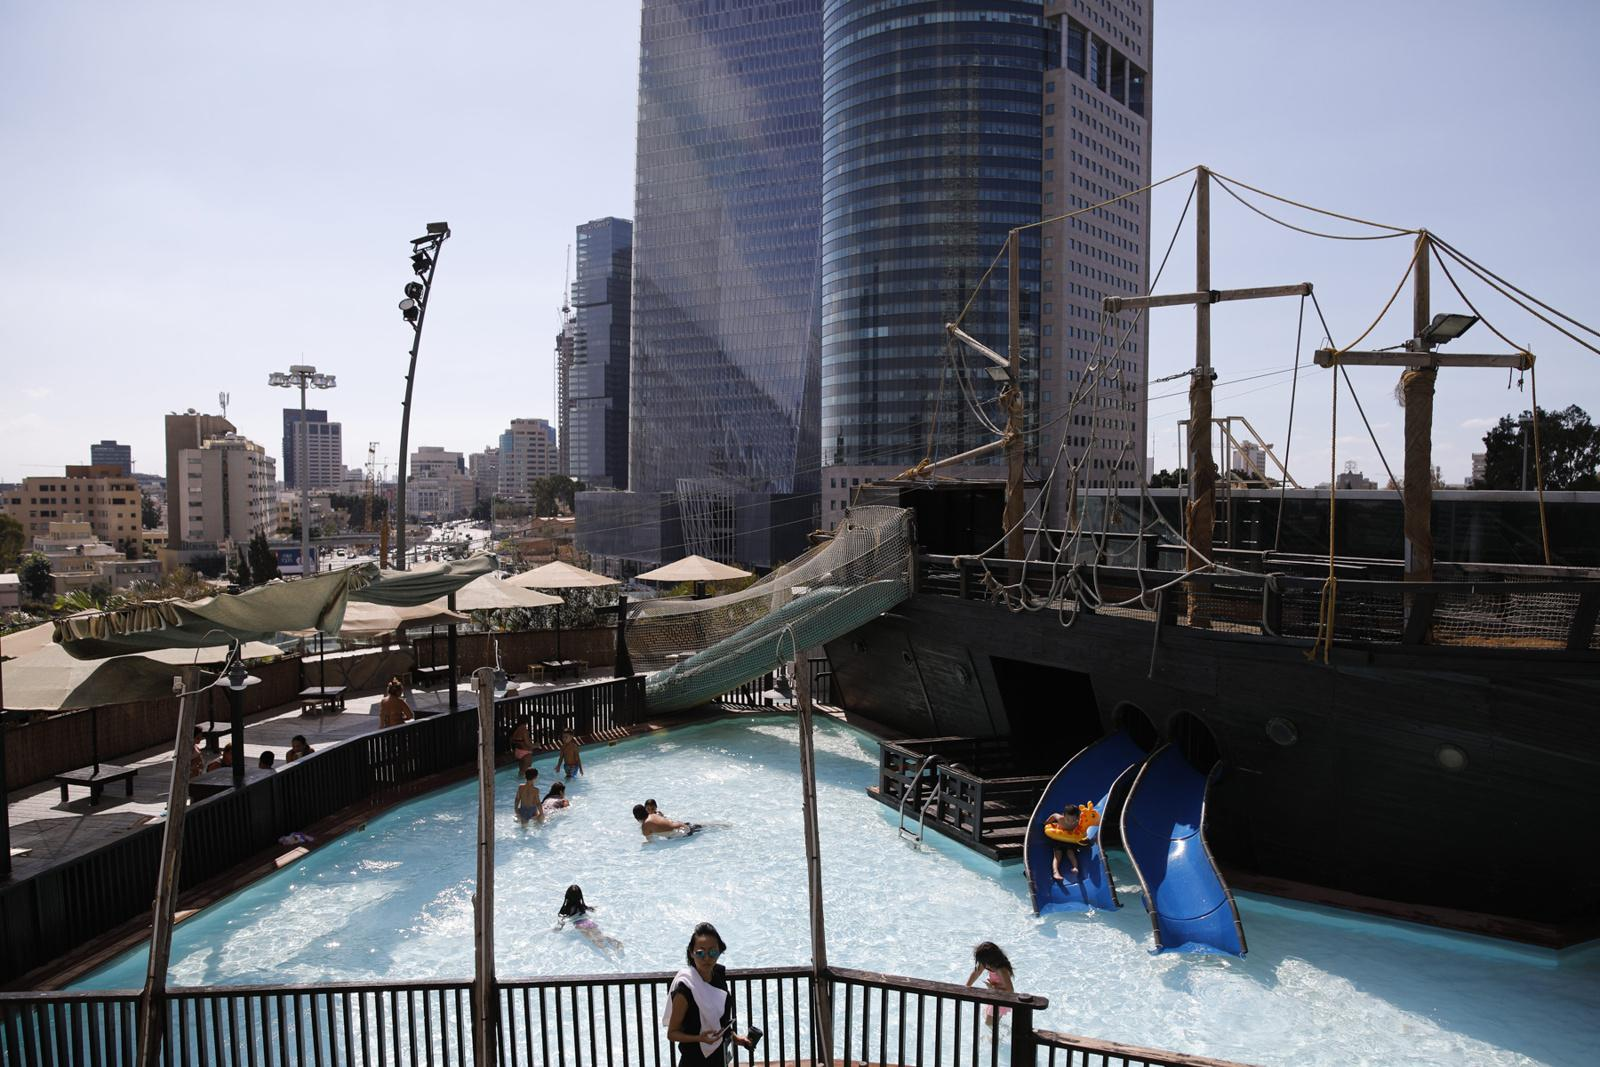 People bath in a swimming pool, which is part of a temporary entertainment park on the rooftop of Azrieli mall during the holidays of Sukkot, October 11, 2017, Tel Aviv, Israel.